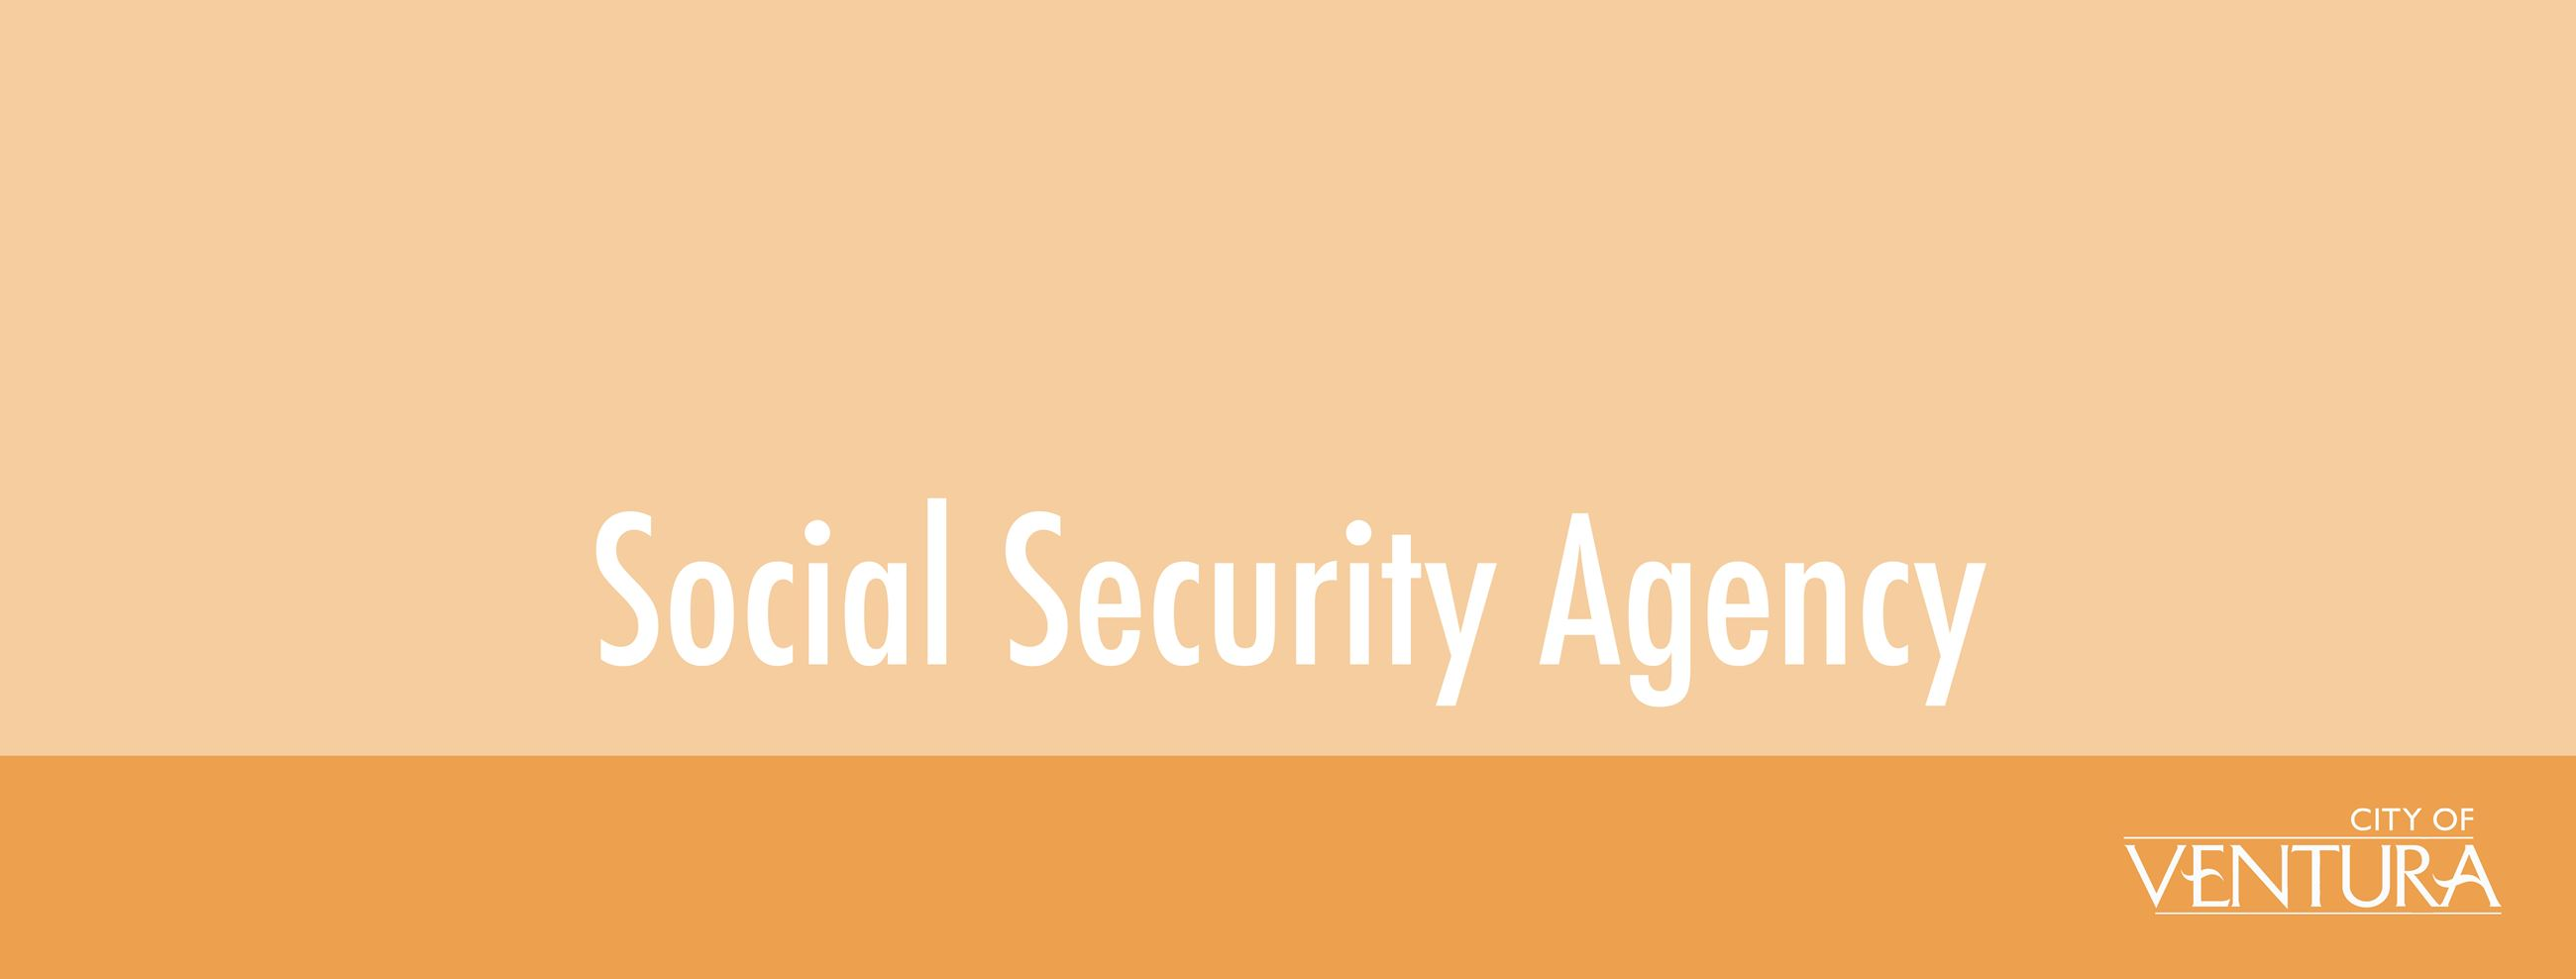 Social Security Agency